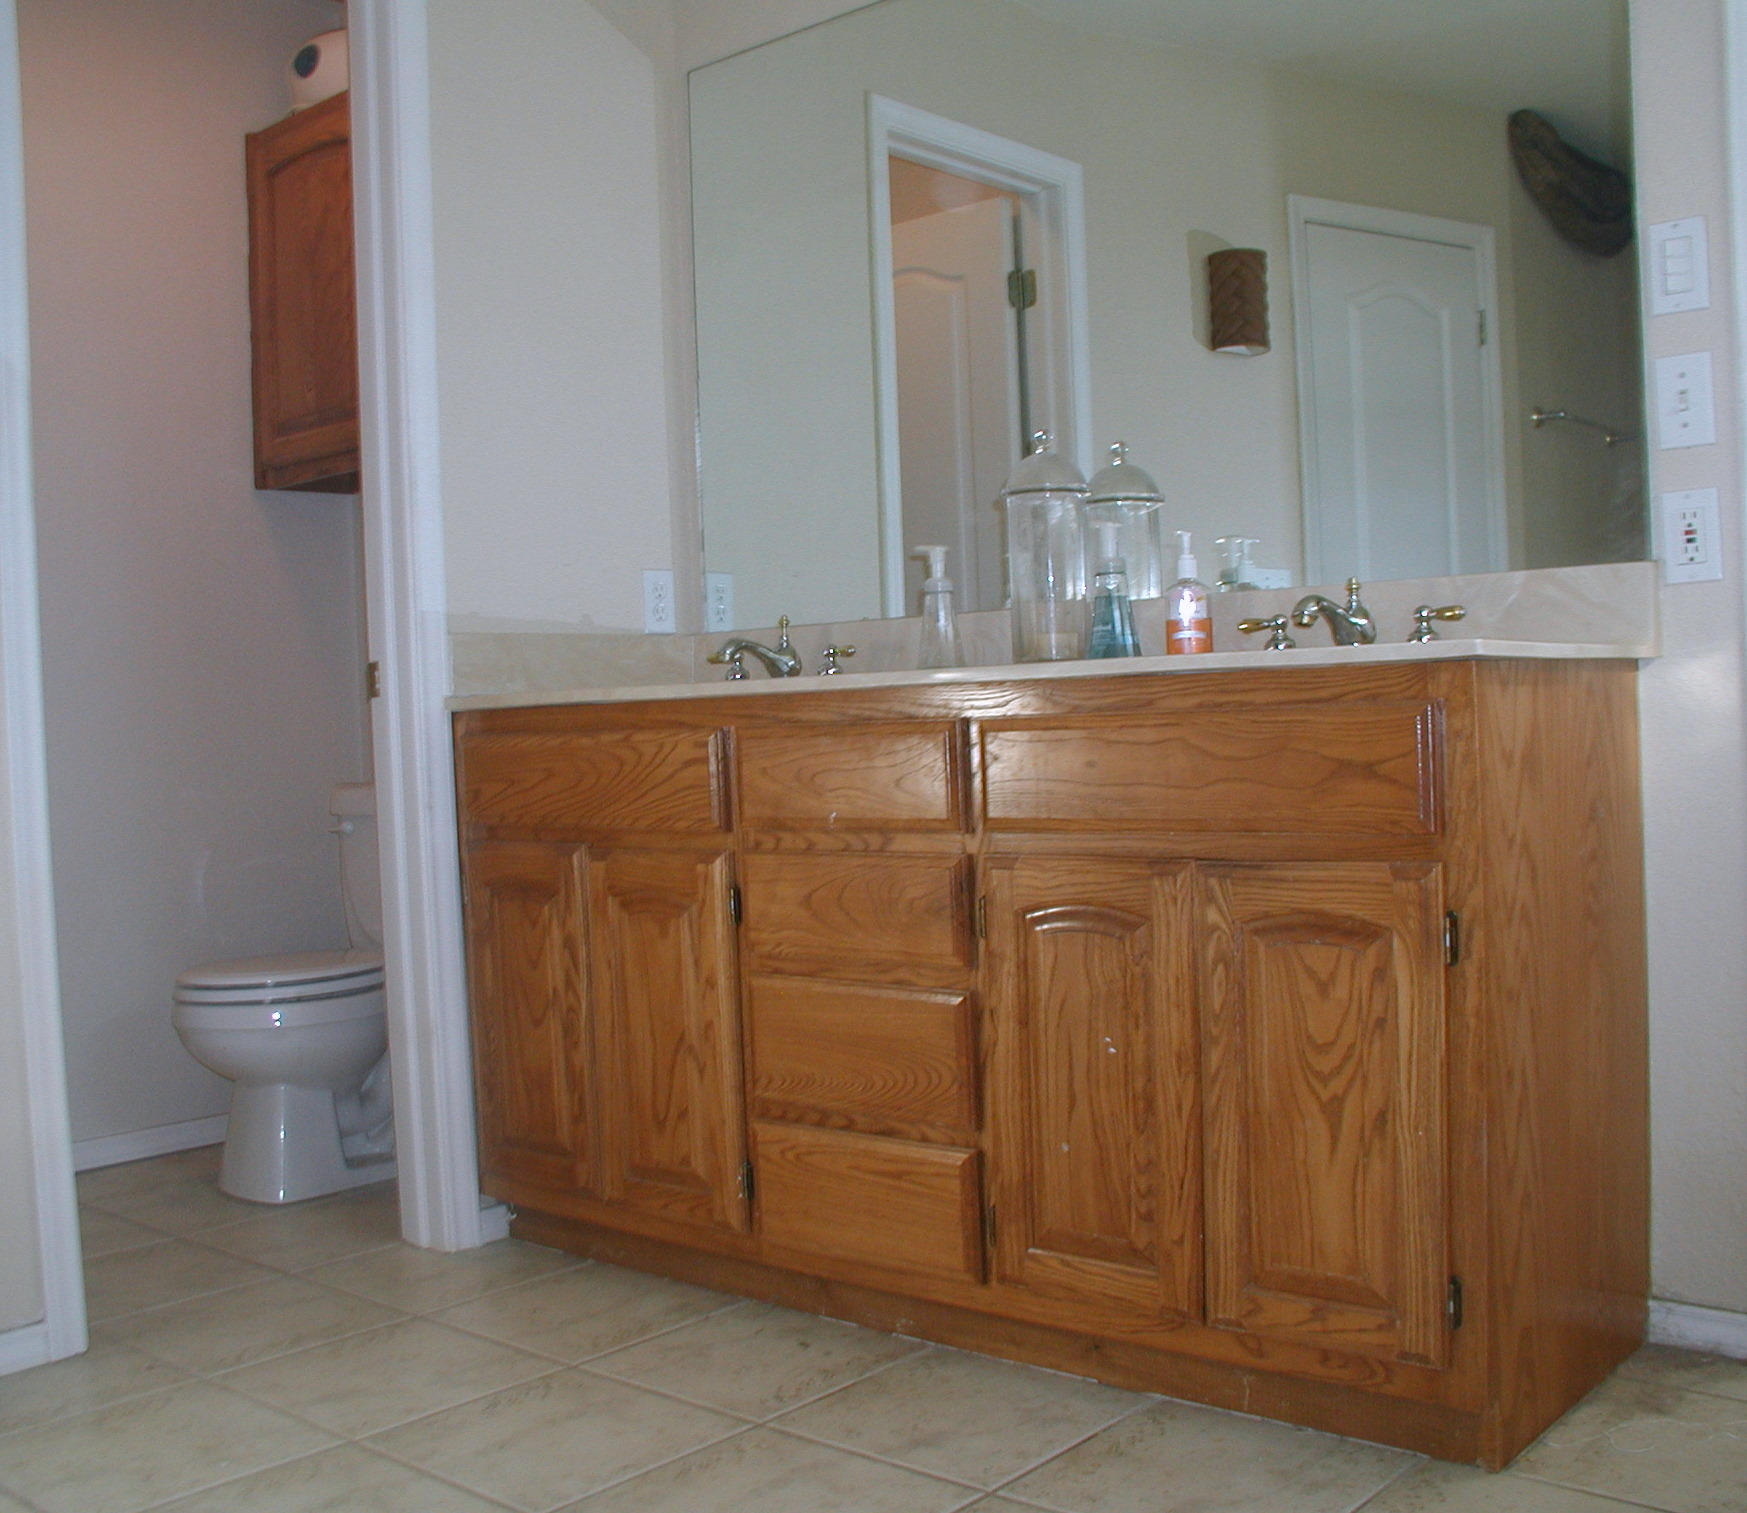 Project transforming builder grade cabinets to old world for Bathroom cabinet ideas photos